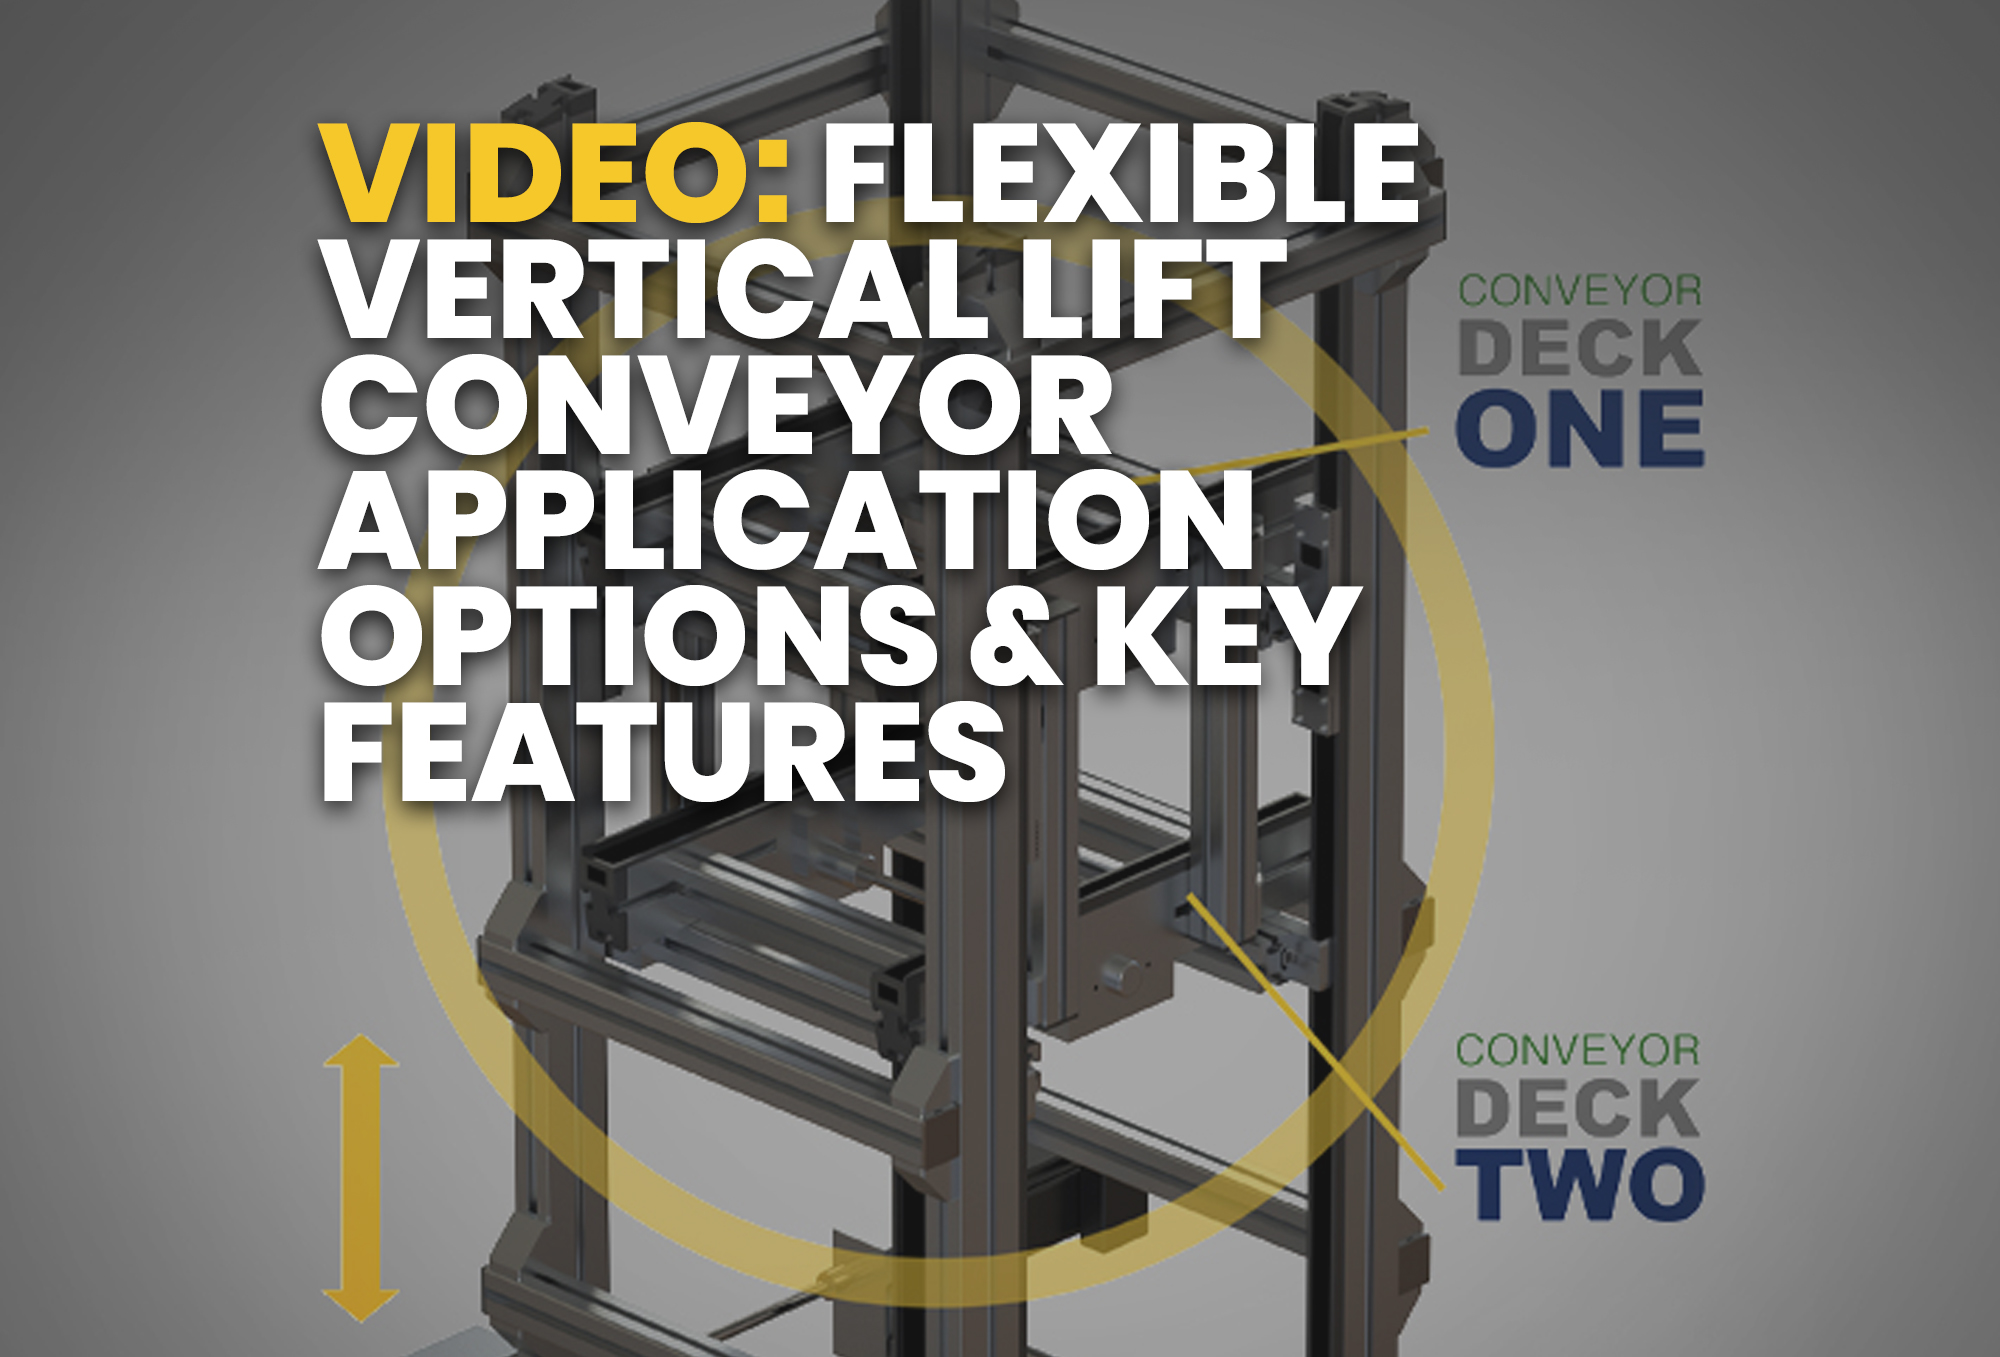 Flexible Vertical Lift Conveyor Application Options & Key Features - Resource